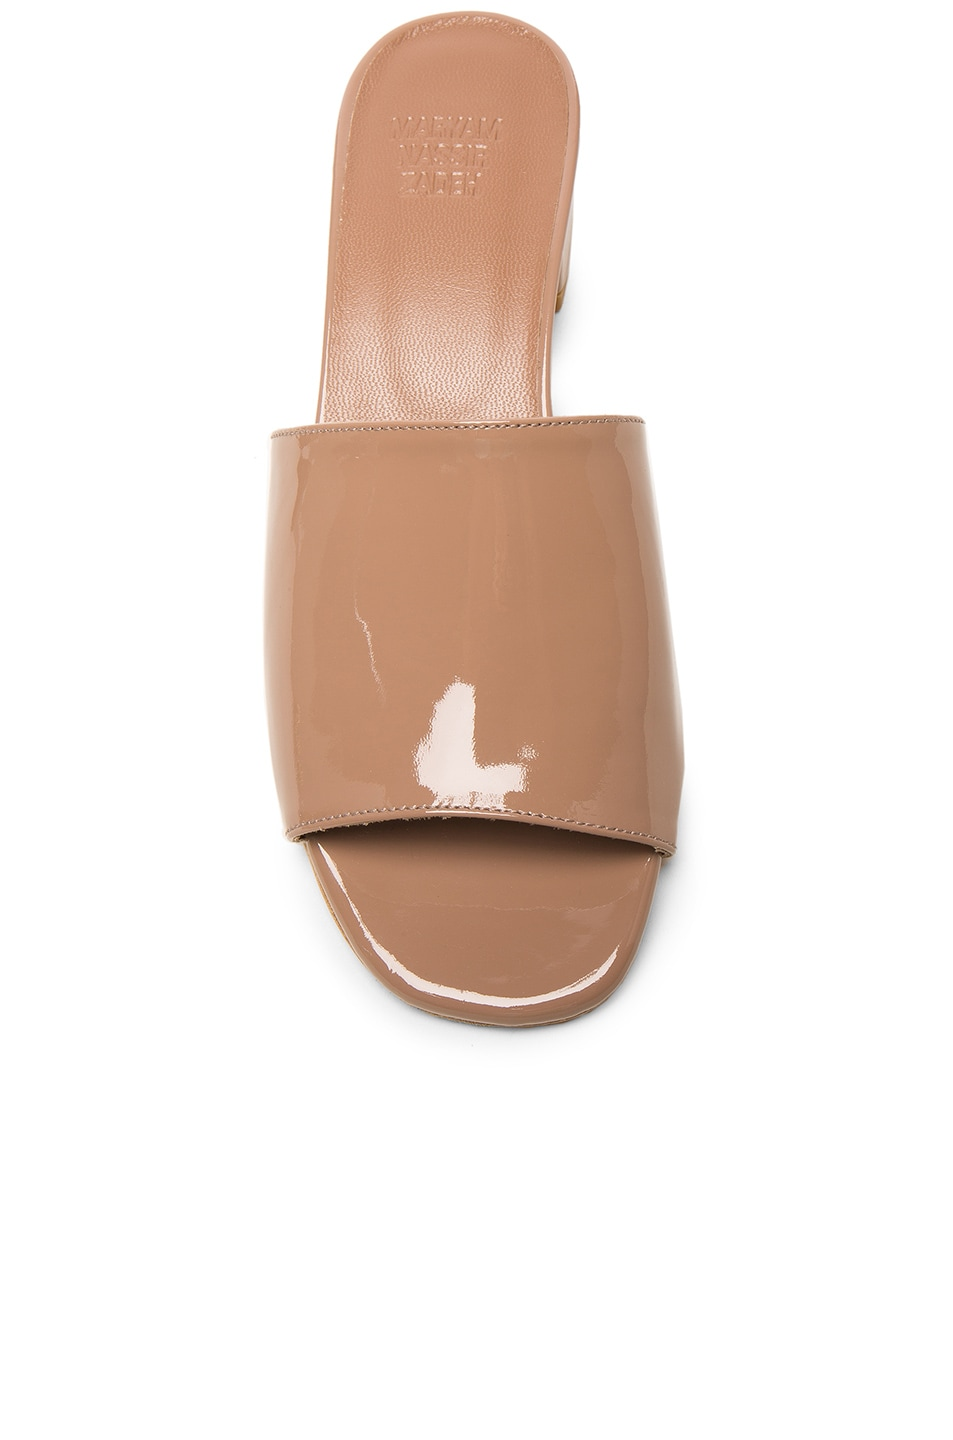 MARYAM NASSIR ZADEH High Shine Sandals in Taupe Patent